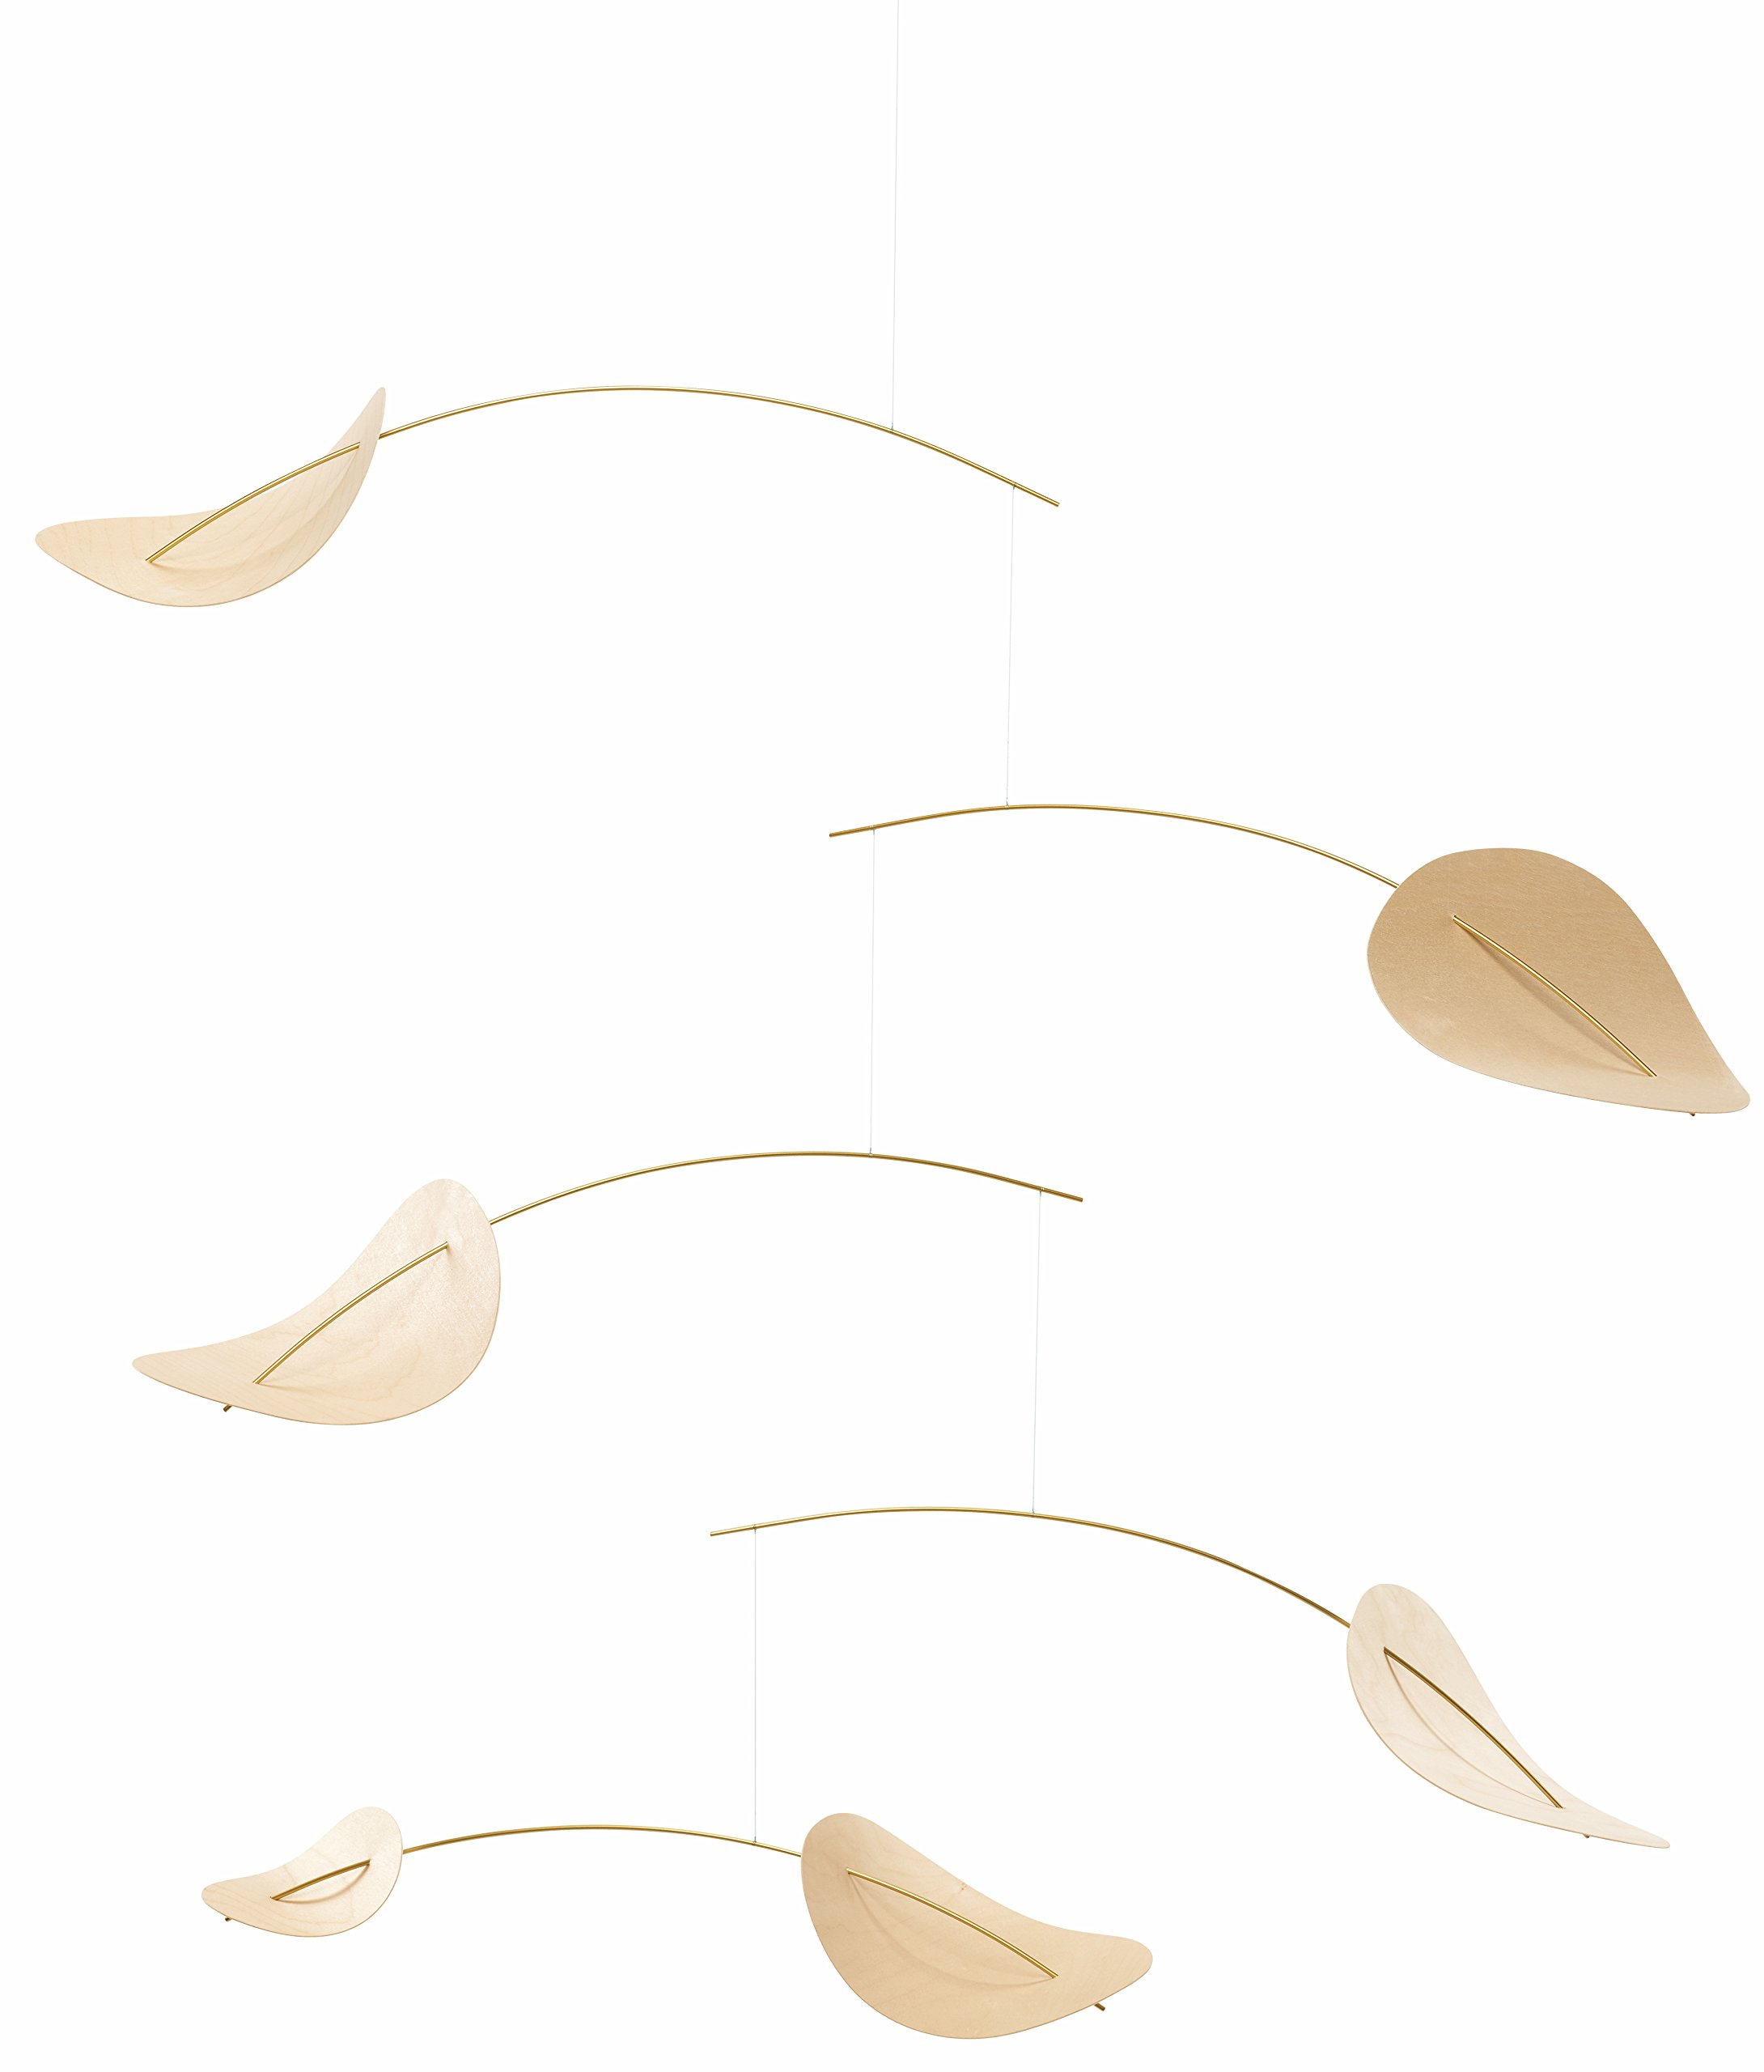 Drifting Clouds Hanging Mobile - 39 Inches - Beech Wood and Steel - Handmade in Denmark by Flensted by Flensted Mobiles